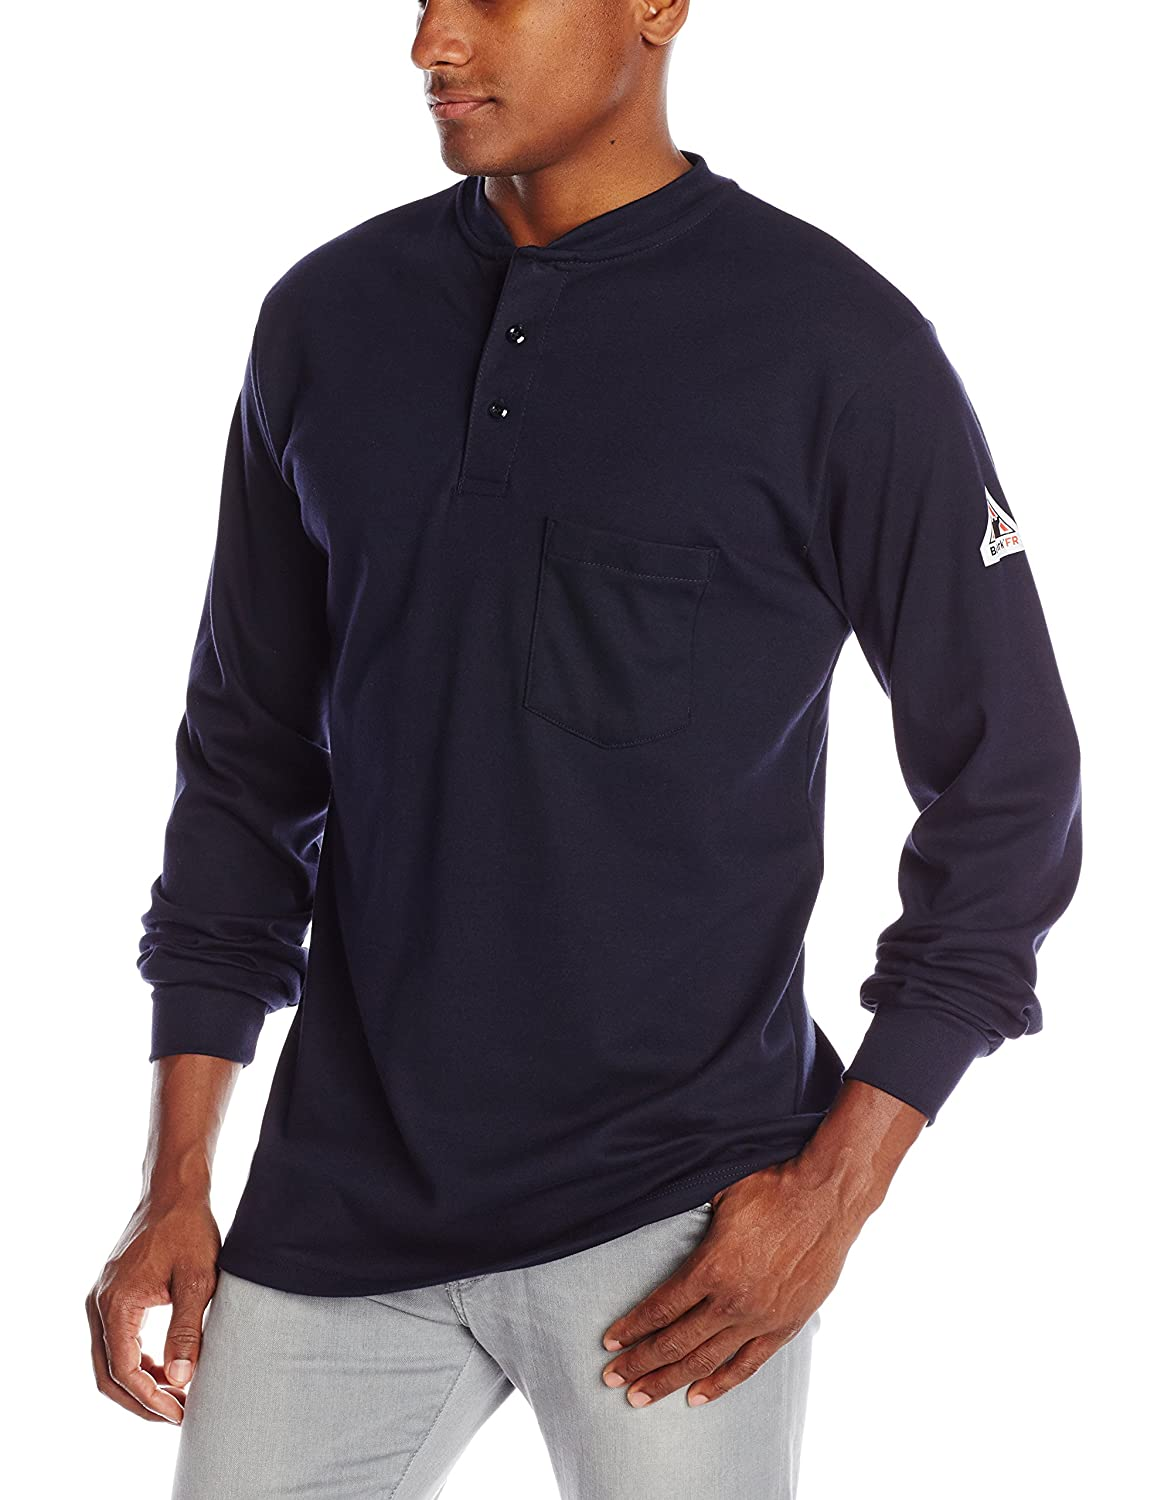 Bulwark Flame Resistant 6.25 oz Cotton Long Sleeve Tagless Henley Shirt, Navy, Large SEL2NV RG L